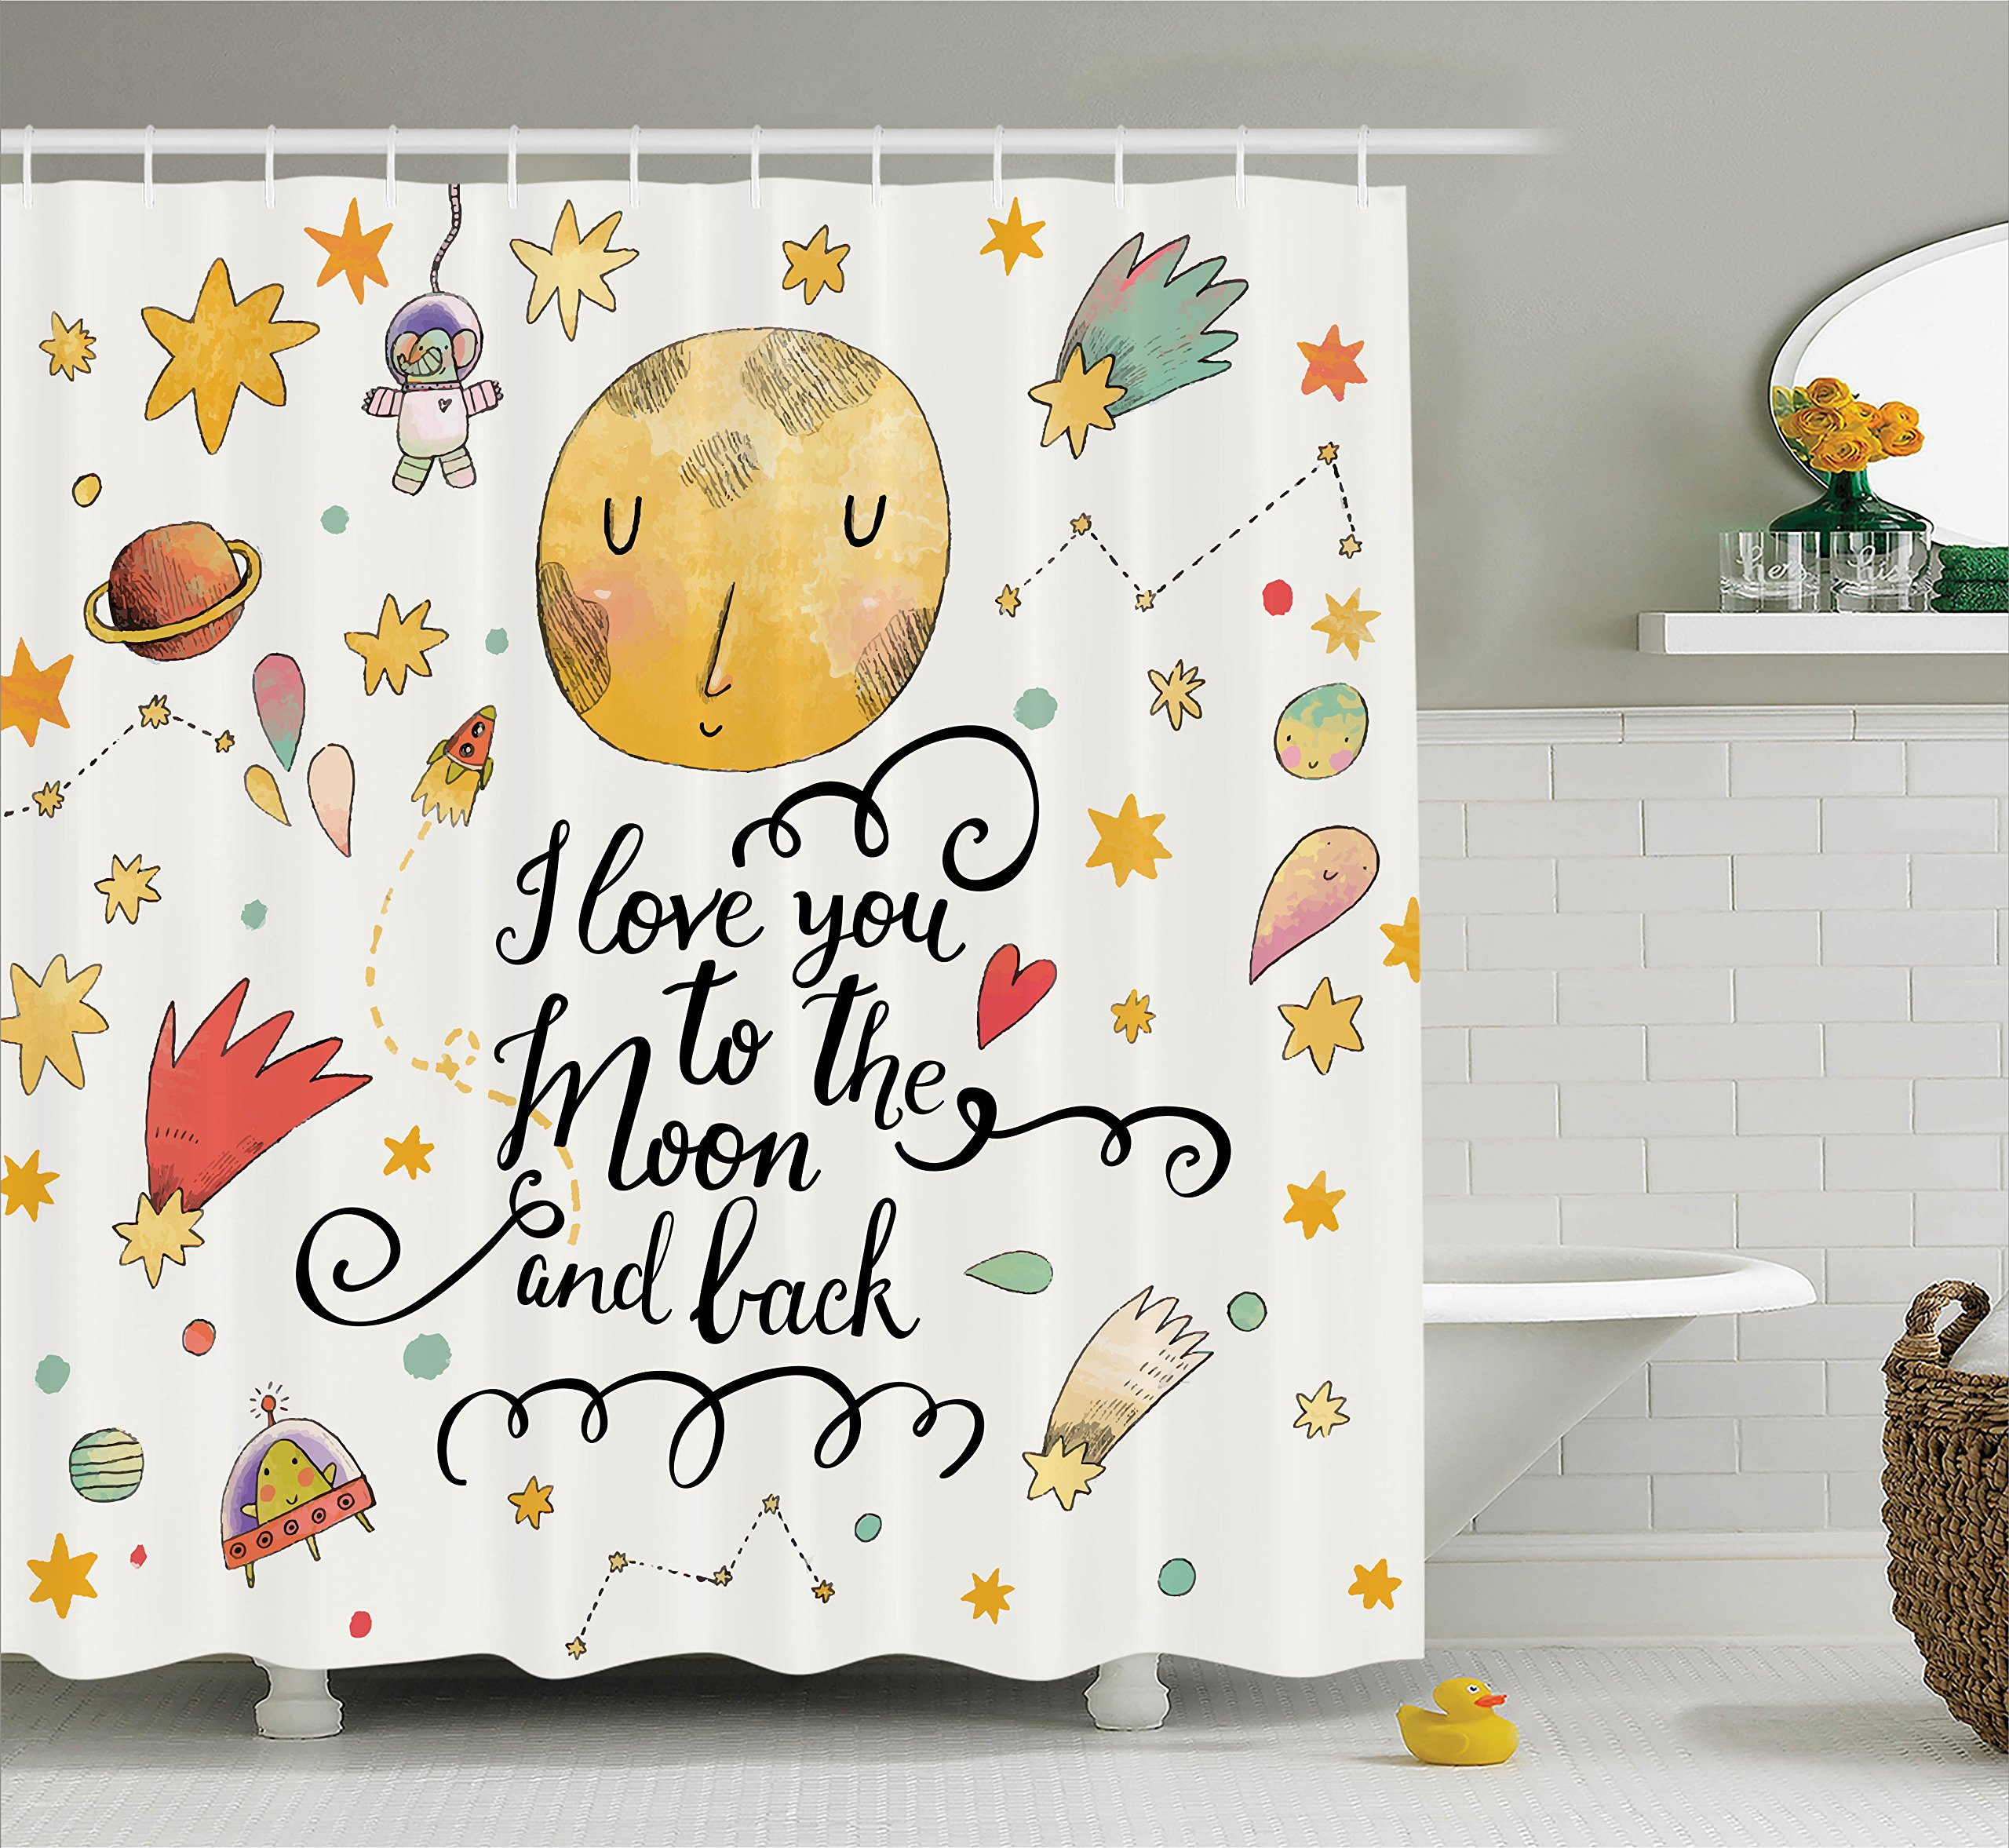 Ambesonne House Decor Collection, ''I Love You to the Moon and Back'' Romantic Quotes Cartoon Planets Moon Astronauts Stars, Polyester Fabric Bathroom Shower Curtain Set with Hooks, Mustard White